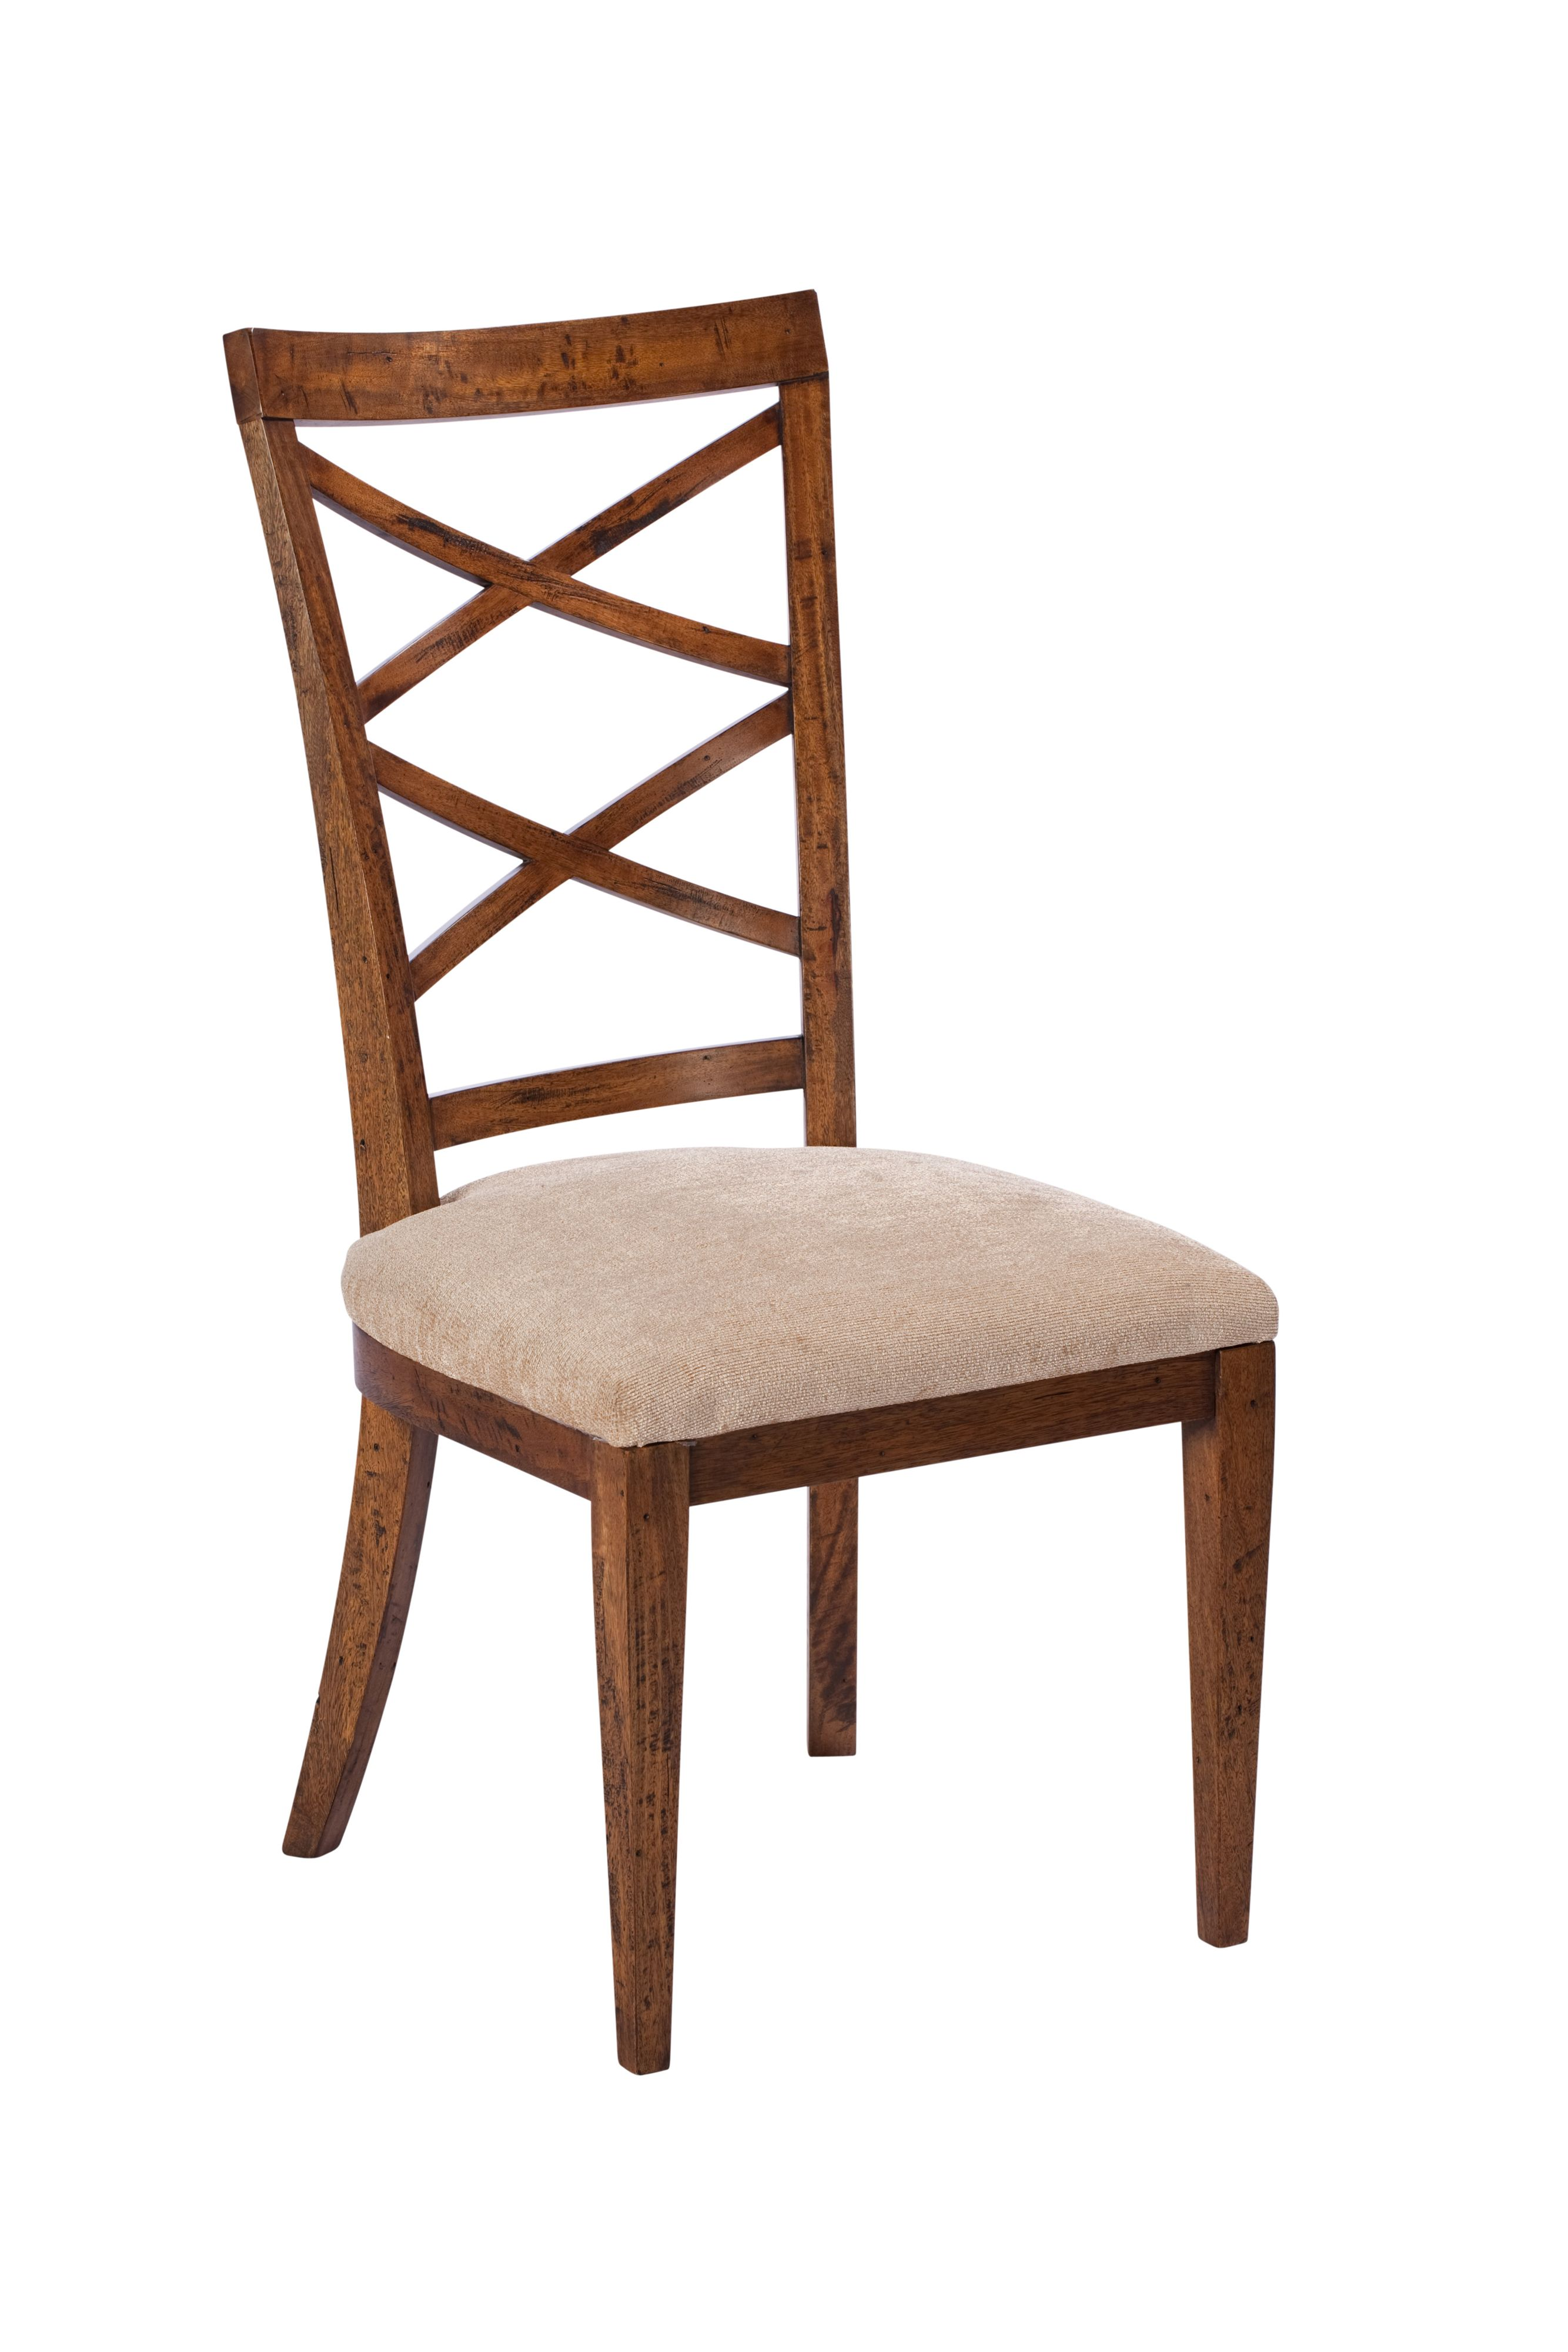 Marlborough biedermeier chair pair